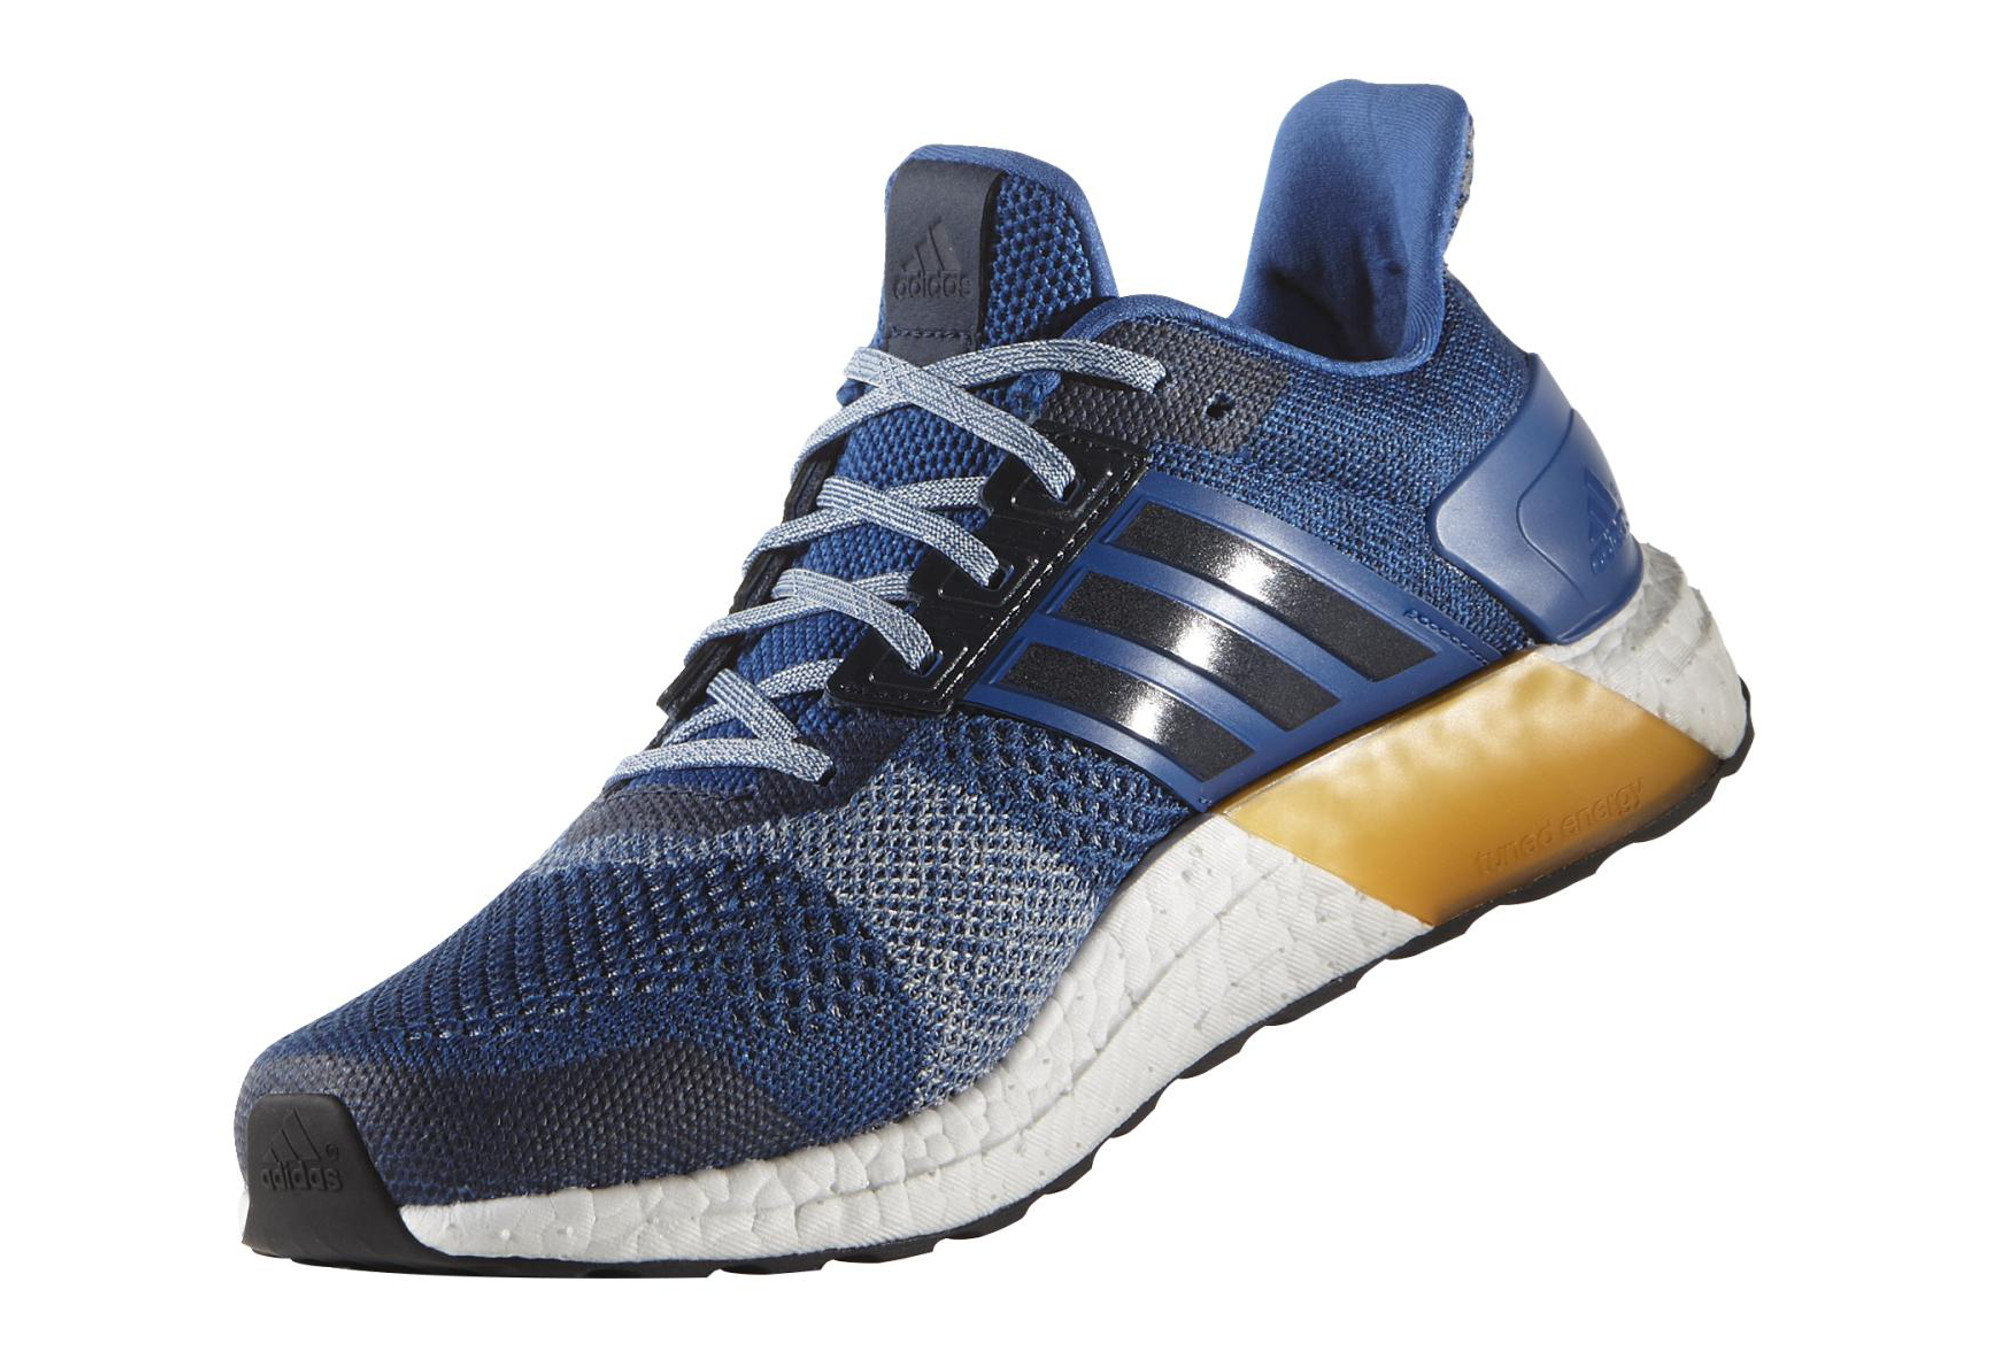 866787a6c36e ... ADIDAS ULTRA BOOST ST Pair of Shoes Blue ...